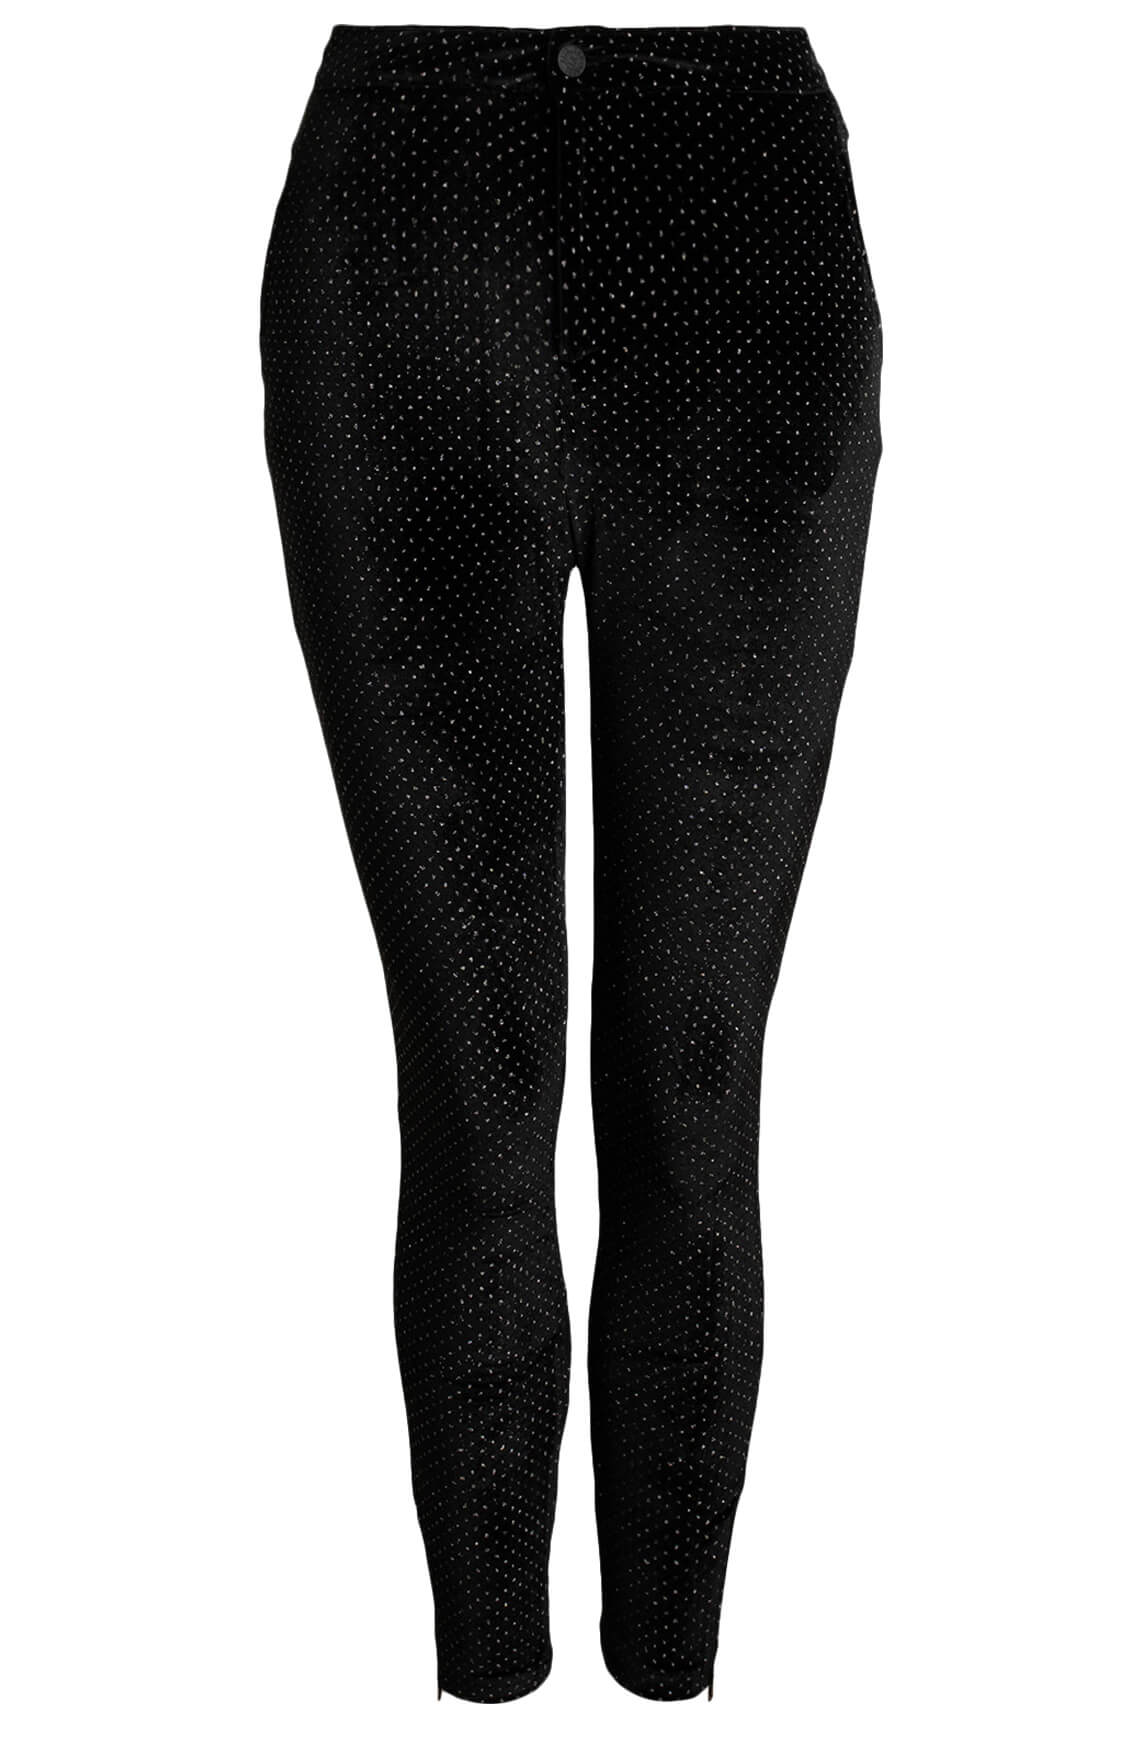 Alix The Label Dames Velvet broek zwart